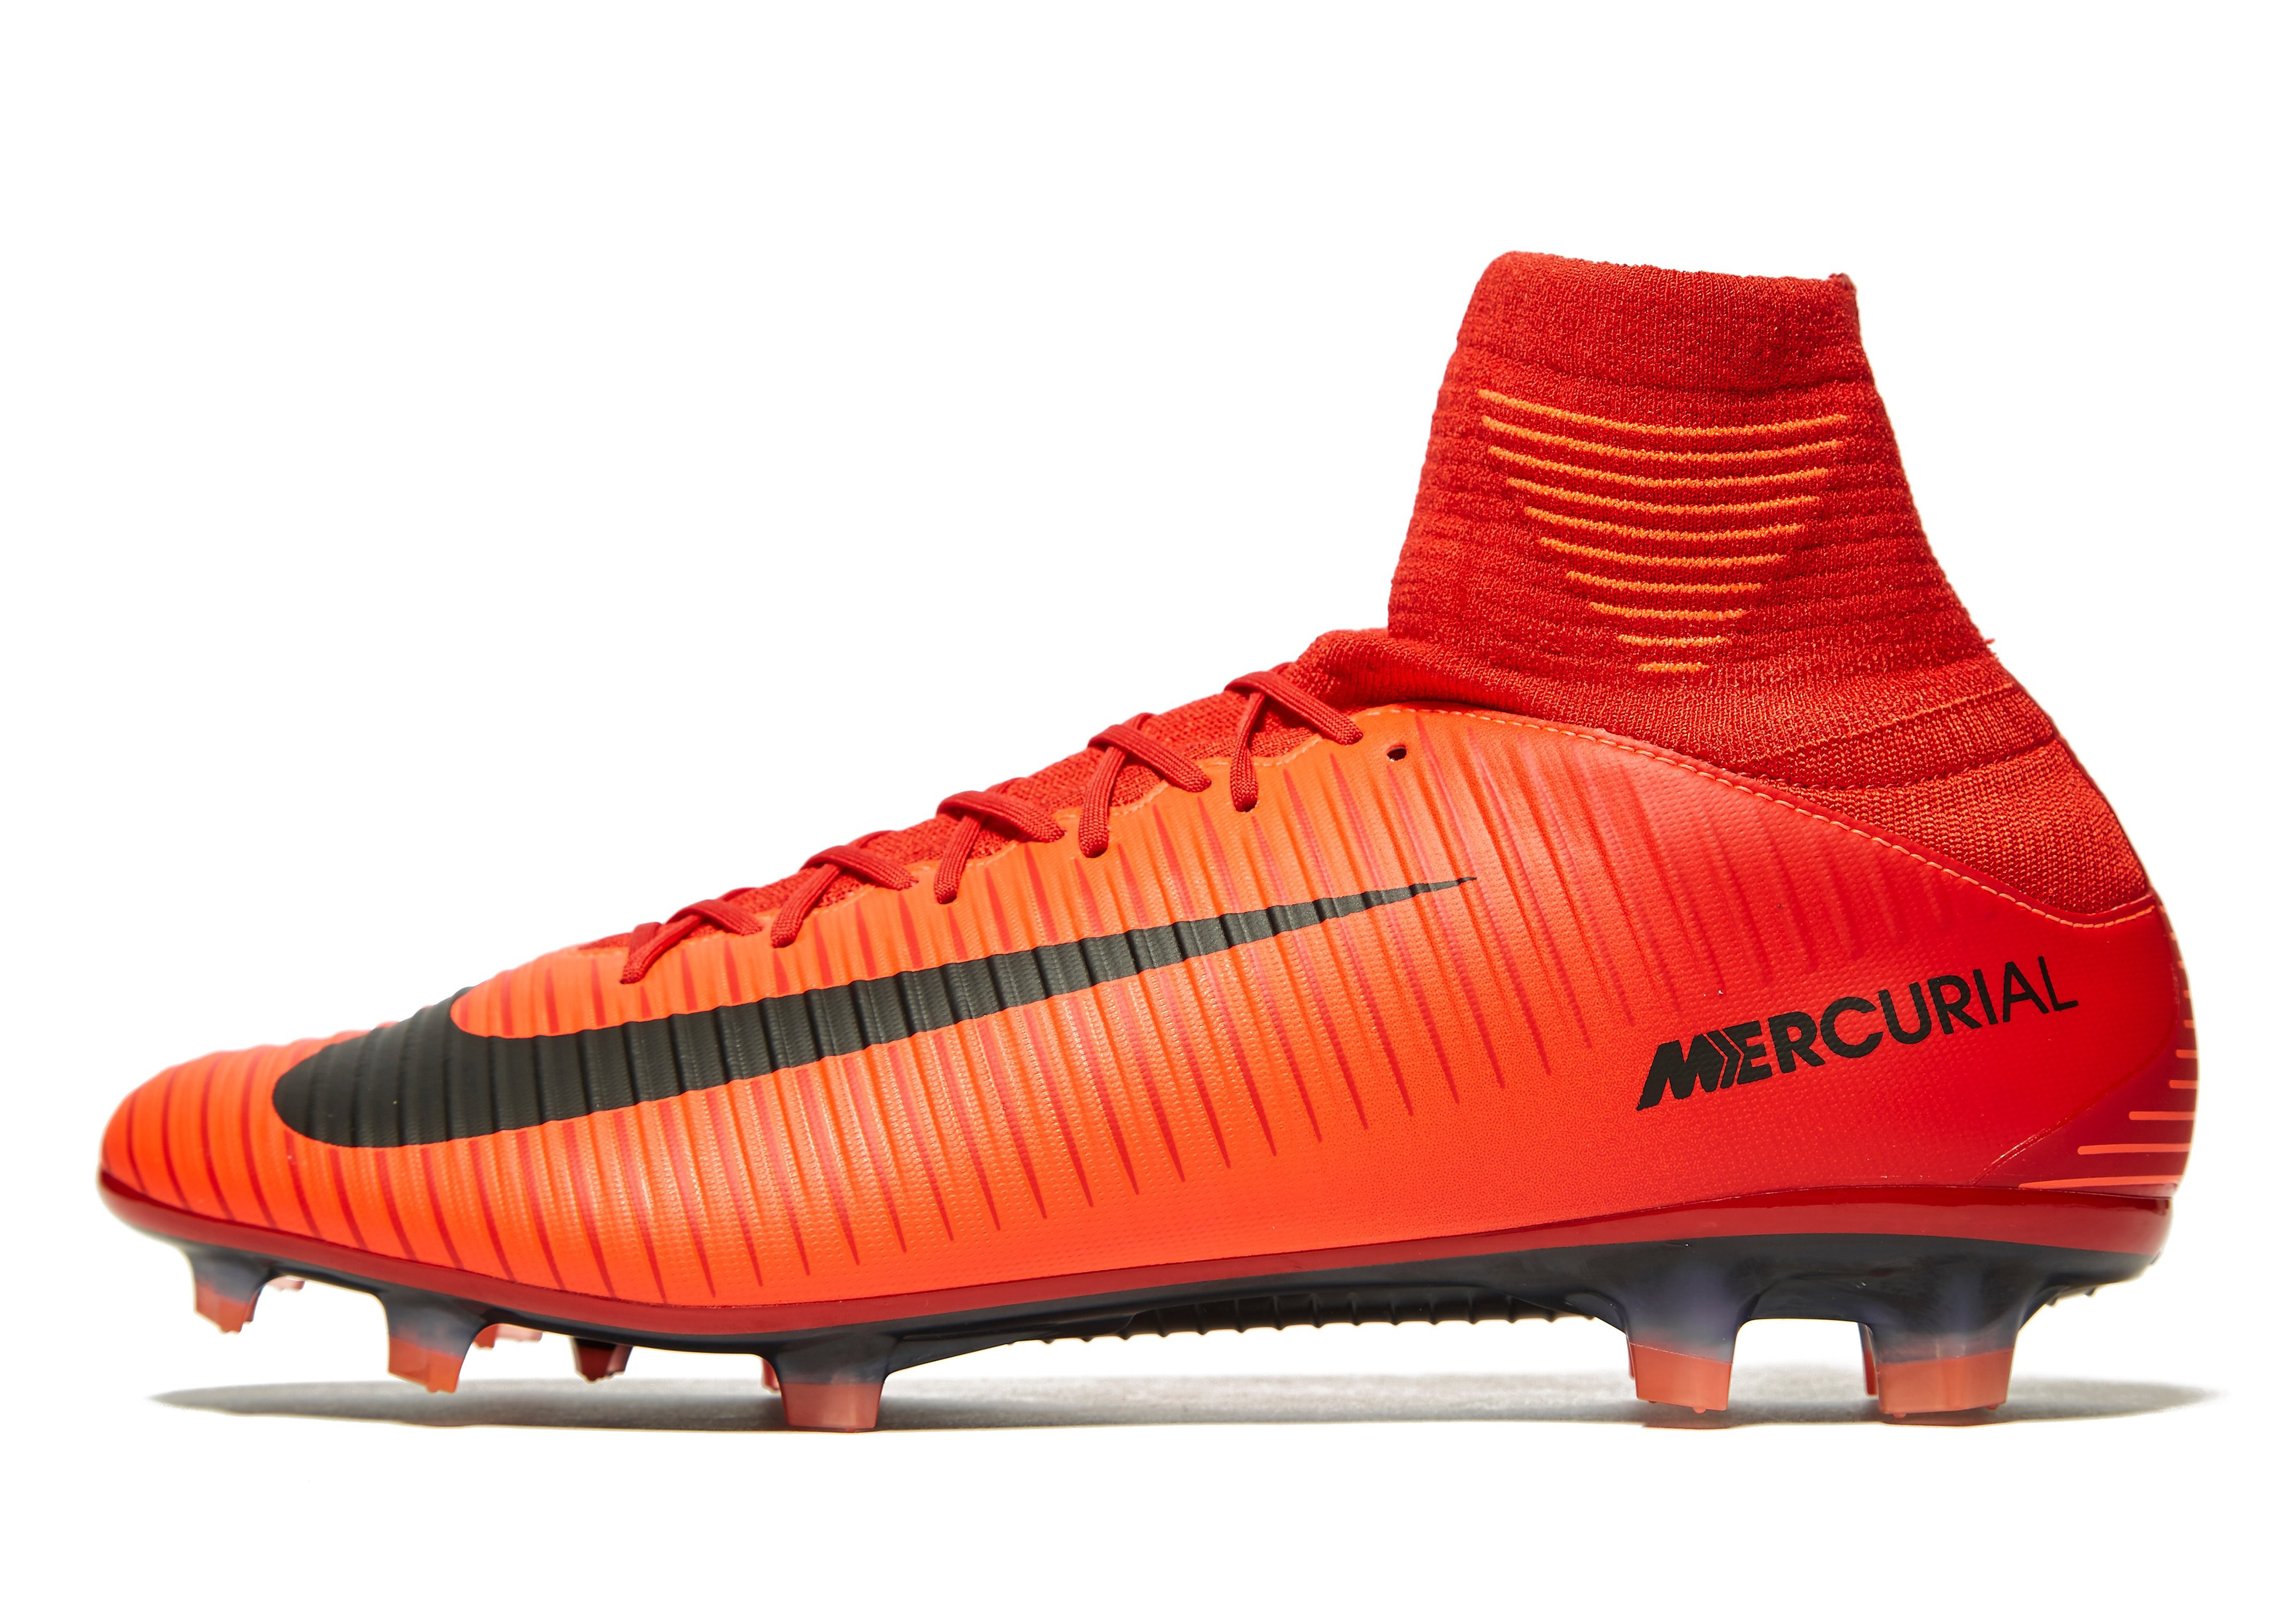 Nike Fire and Ice Mercurial Veloce Dynamic Fit FG